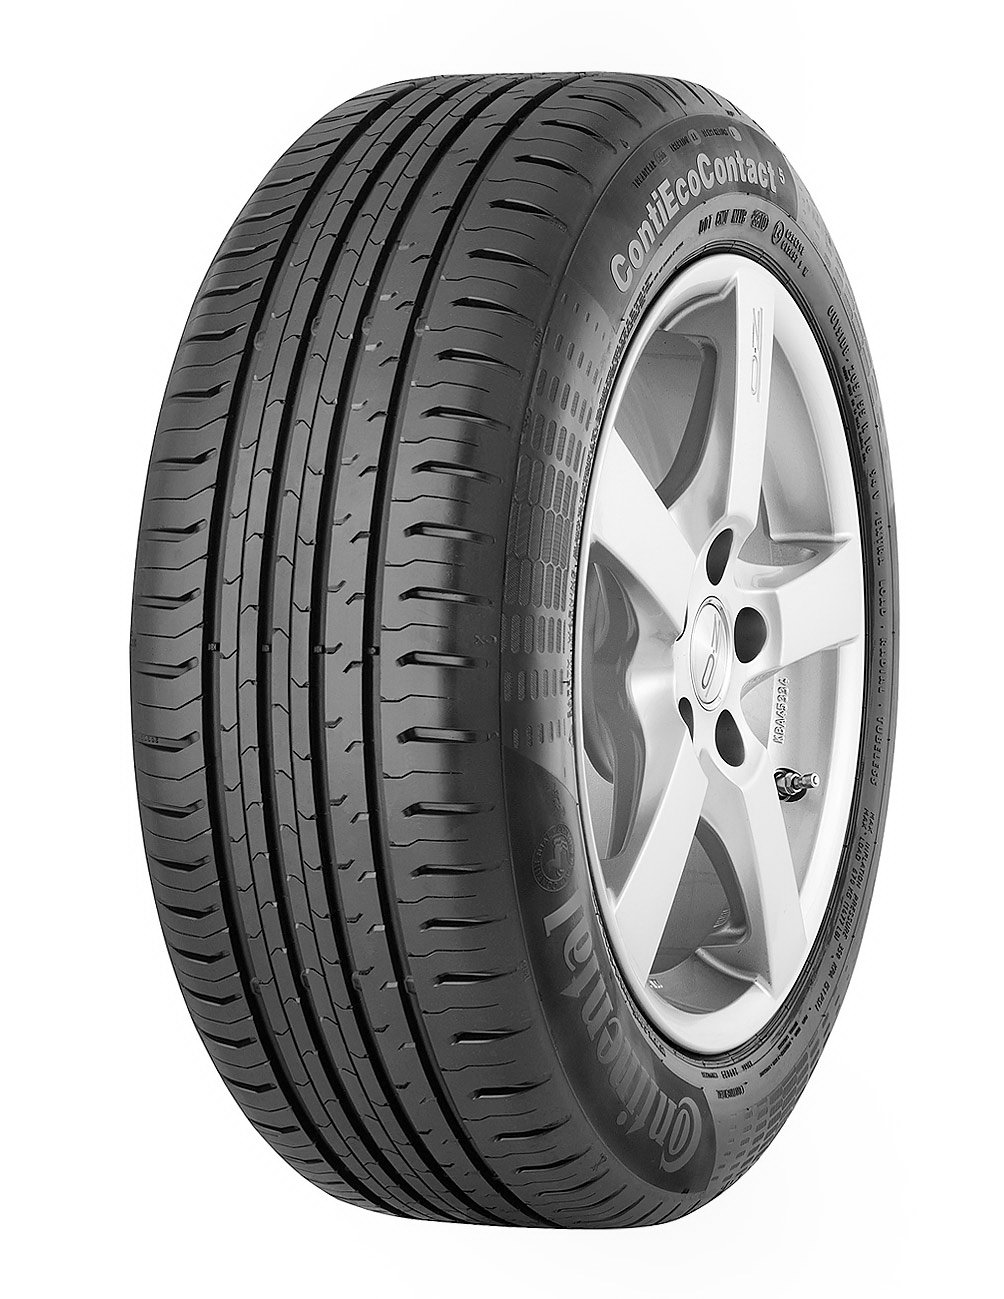 Anvelope vara CONTINENTAL Eco Contact 5 195/55 R16 87H